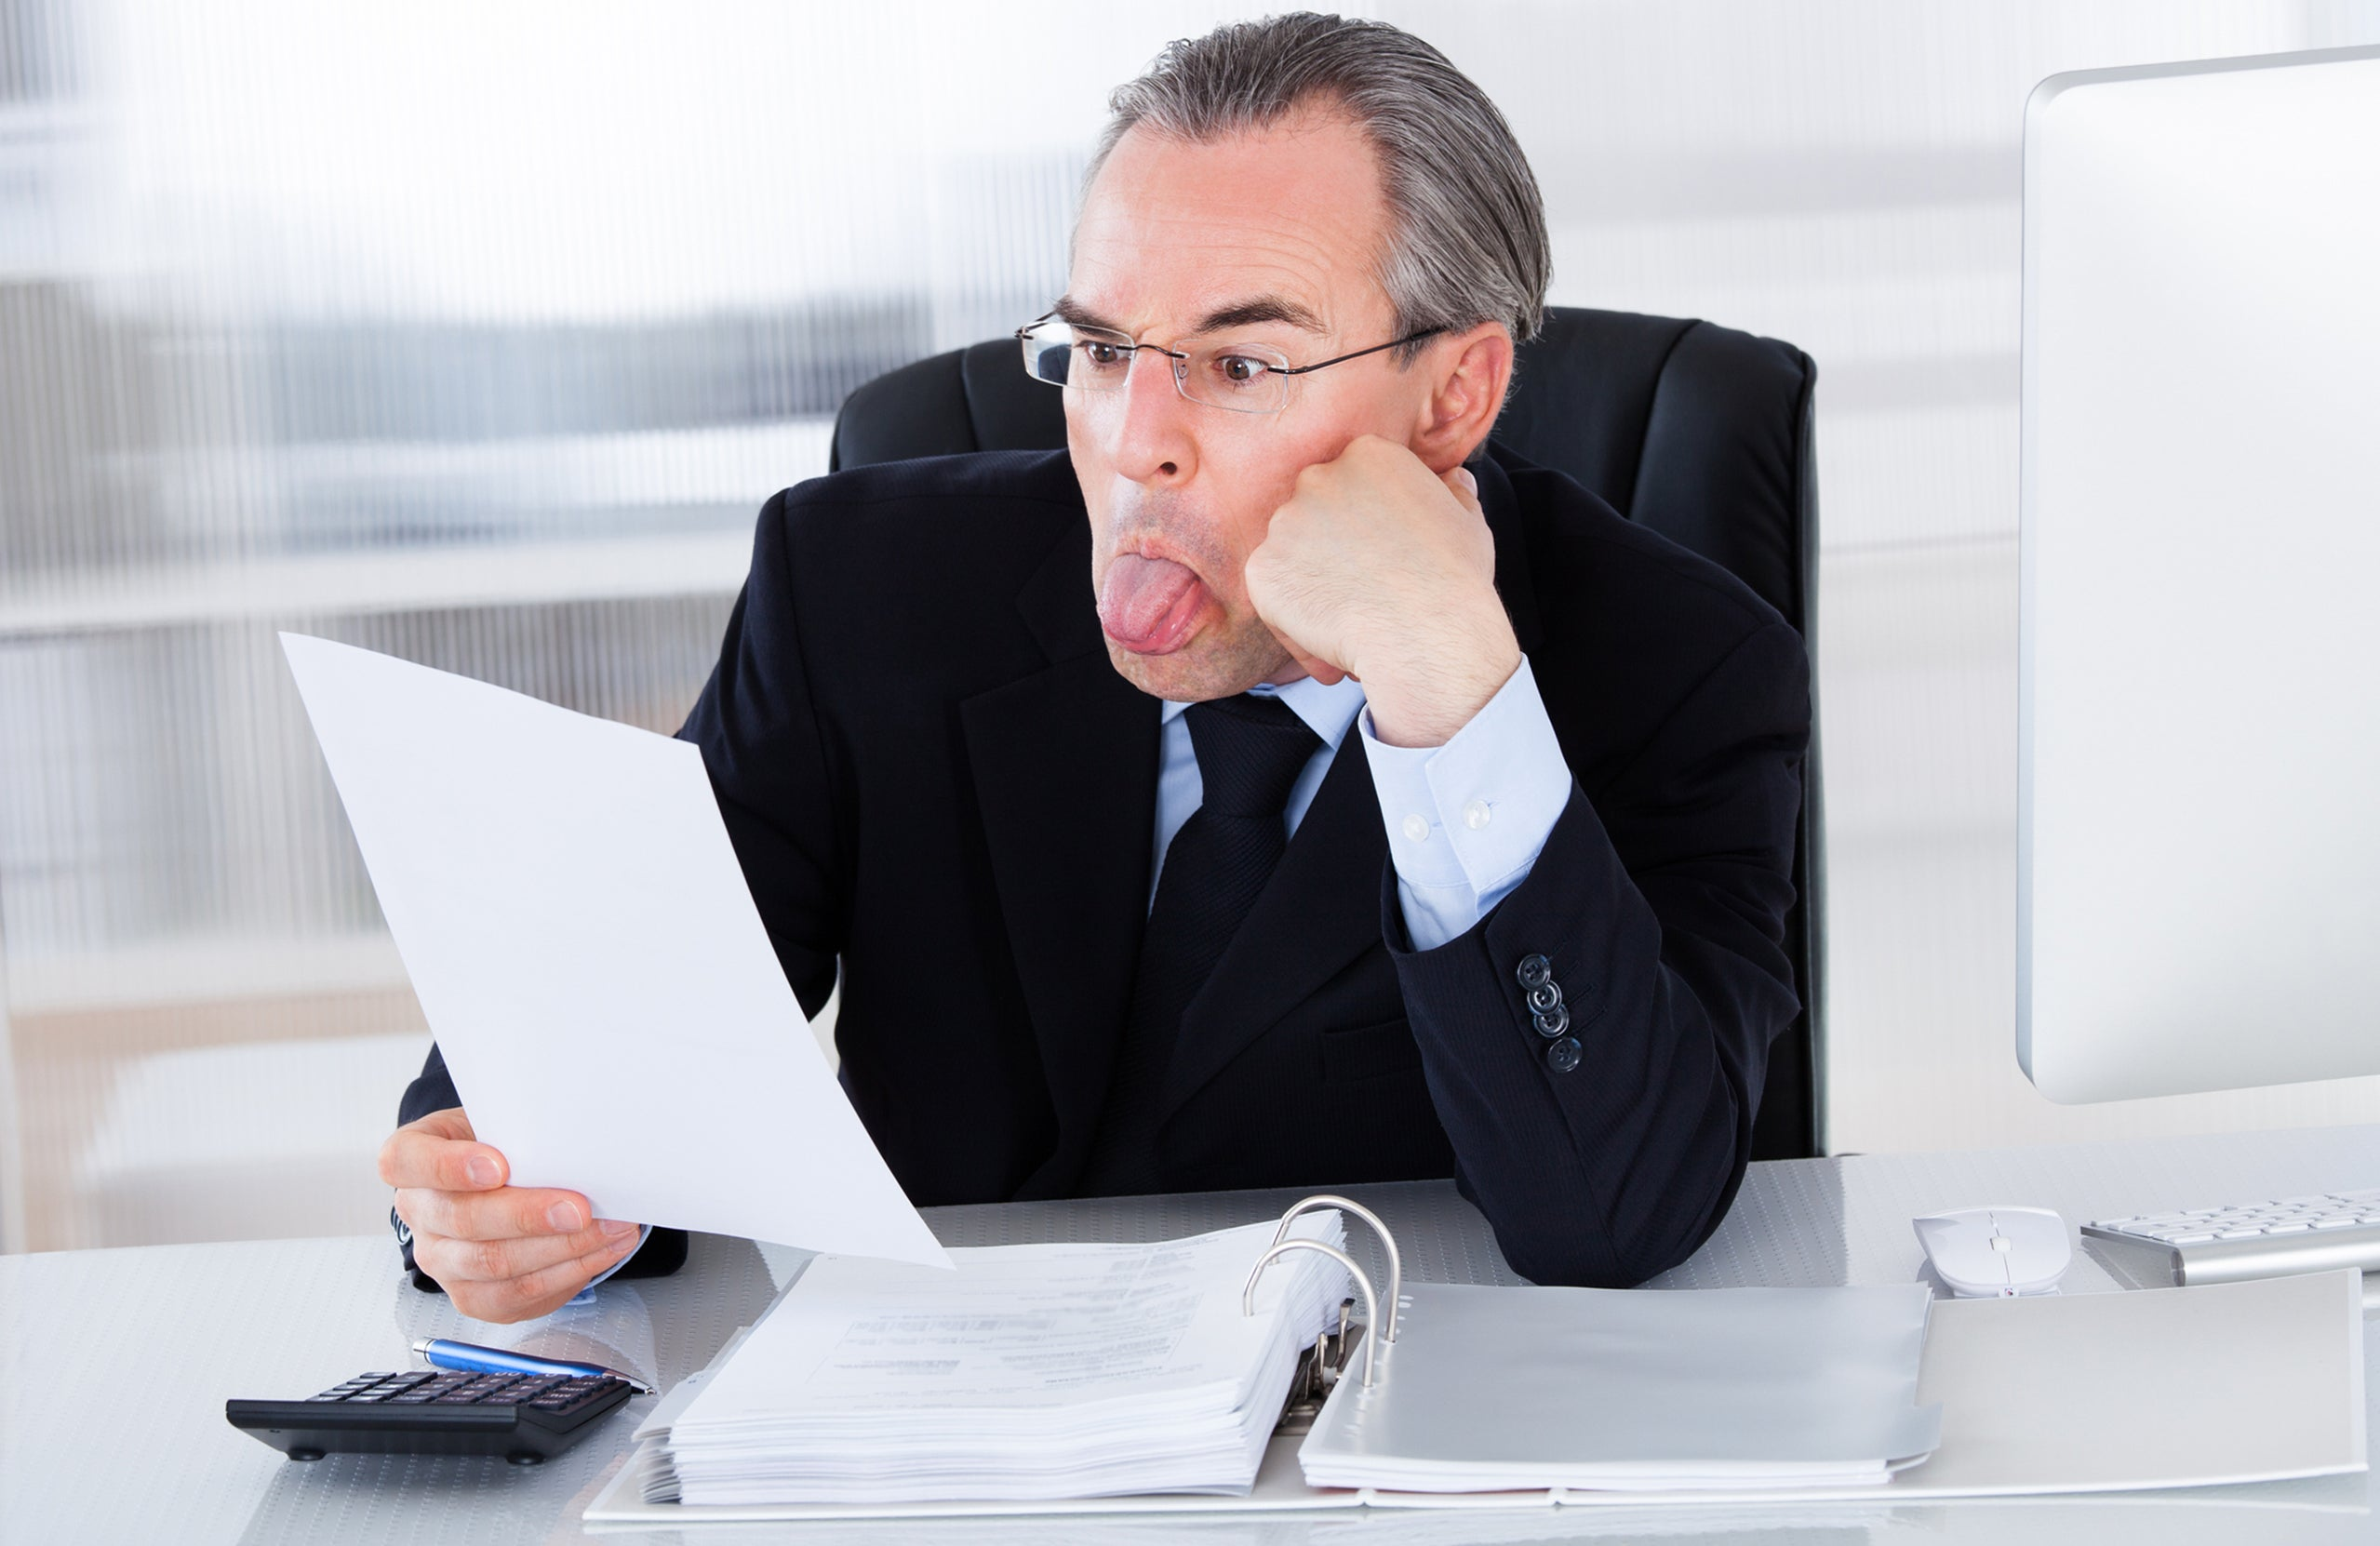 Loan For Bad Credit >> 10 Bizarre Claims People Make to Avoid Paying Taxes | Credit.com